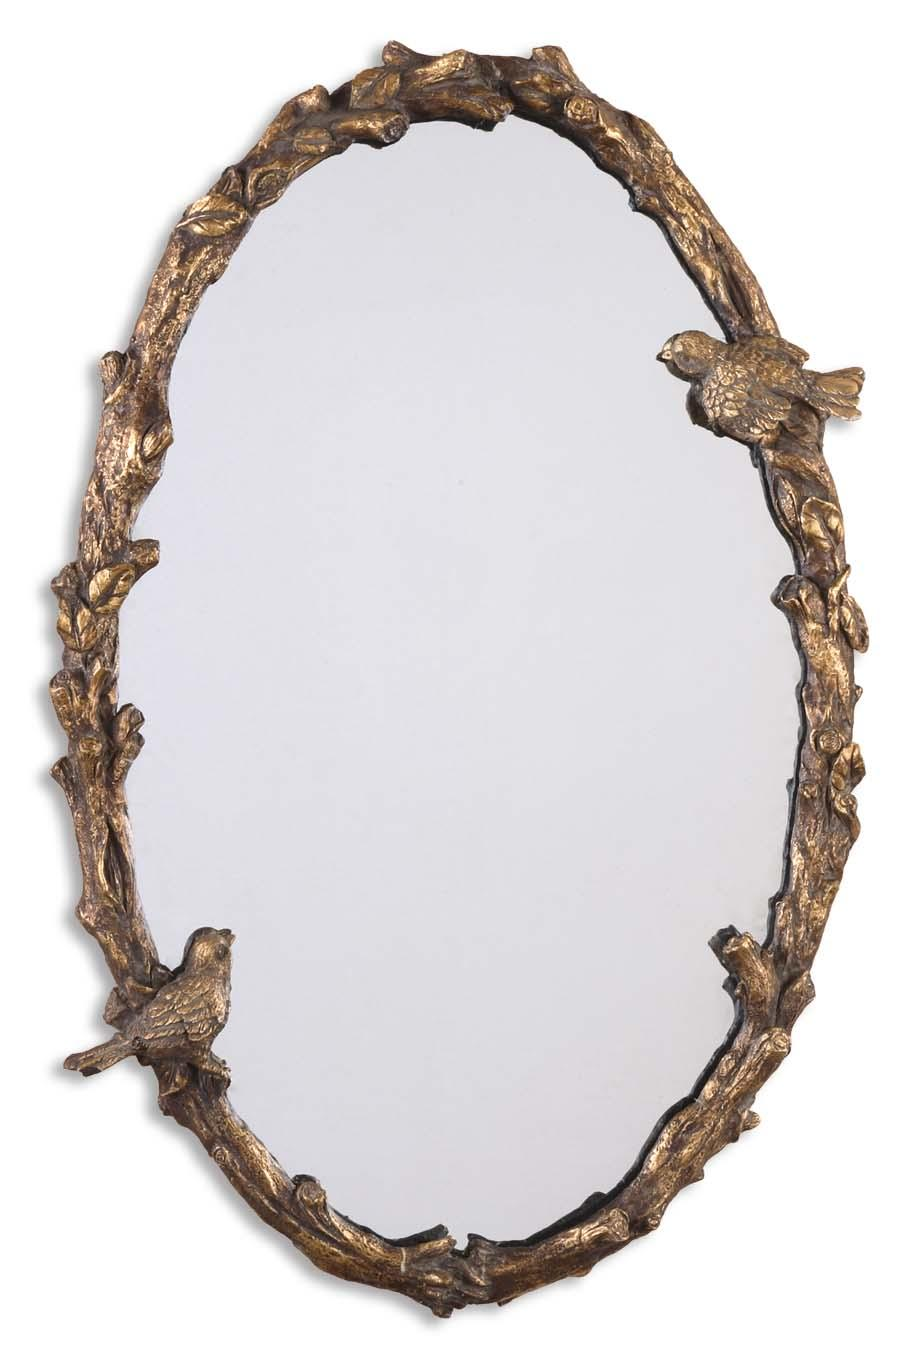 Mirrors - Oval Paza Oval Mirror by Uttermost at Rooms for Less